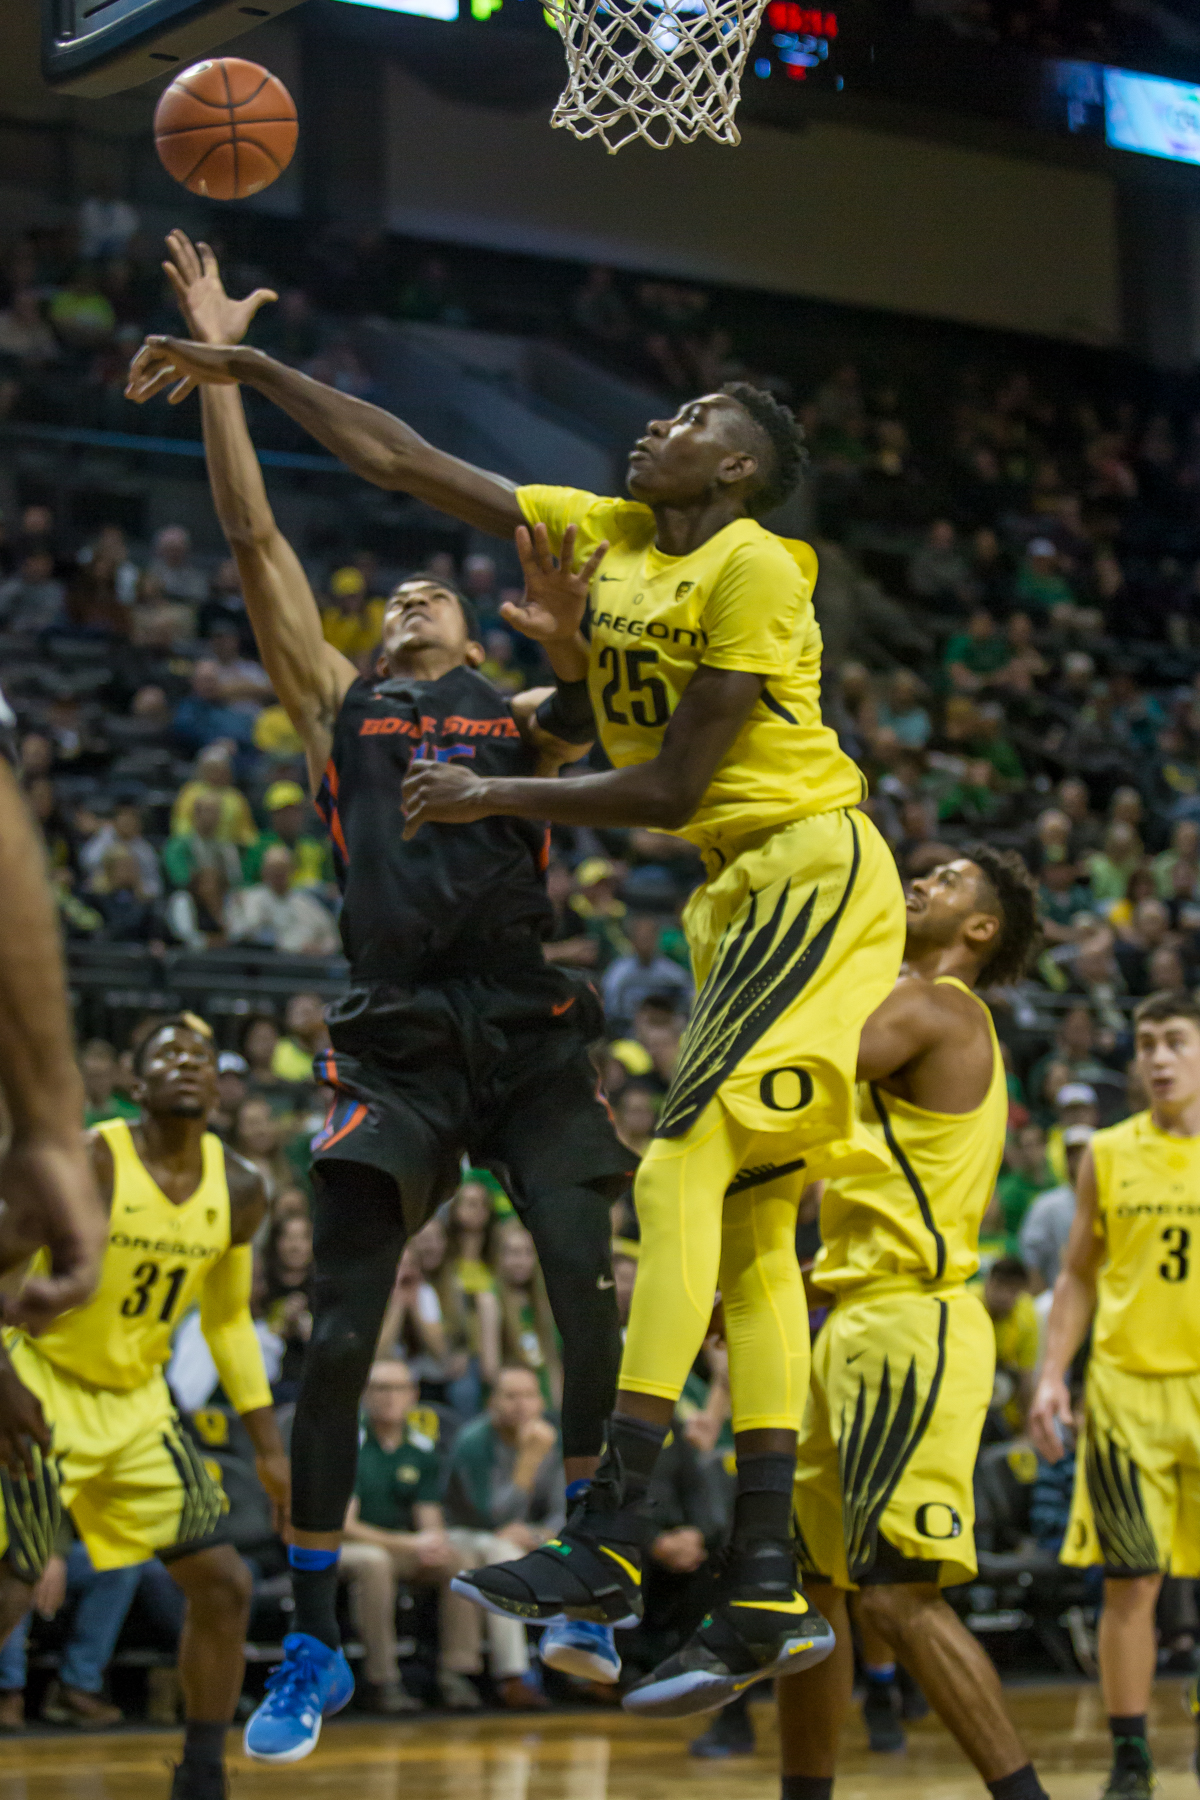 Oregon forward Chris Boucher (#25) blocks Boise State guard Chandler Hutchinson (#15). After trailing for most of the game, the Oregon Ducks defeated the Boise State Broncos 68-63. Photo by Dillon Vibes